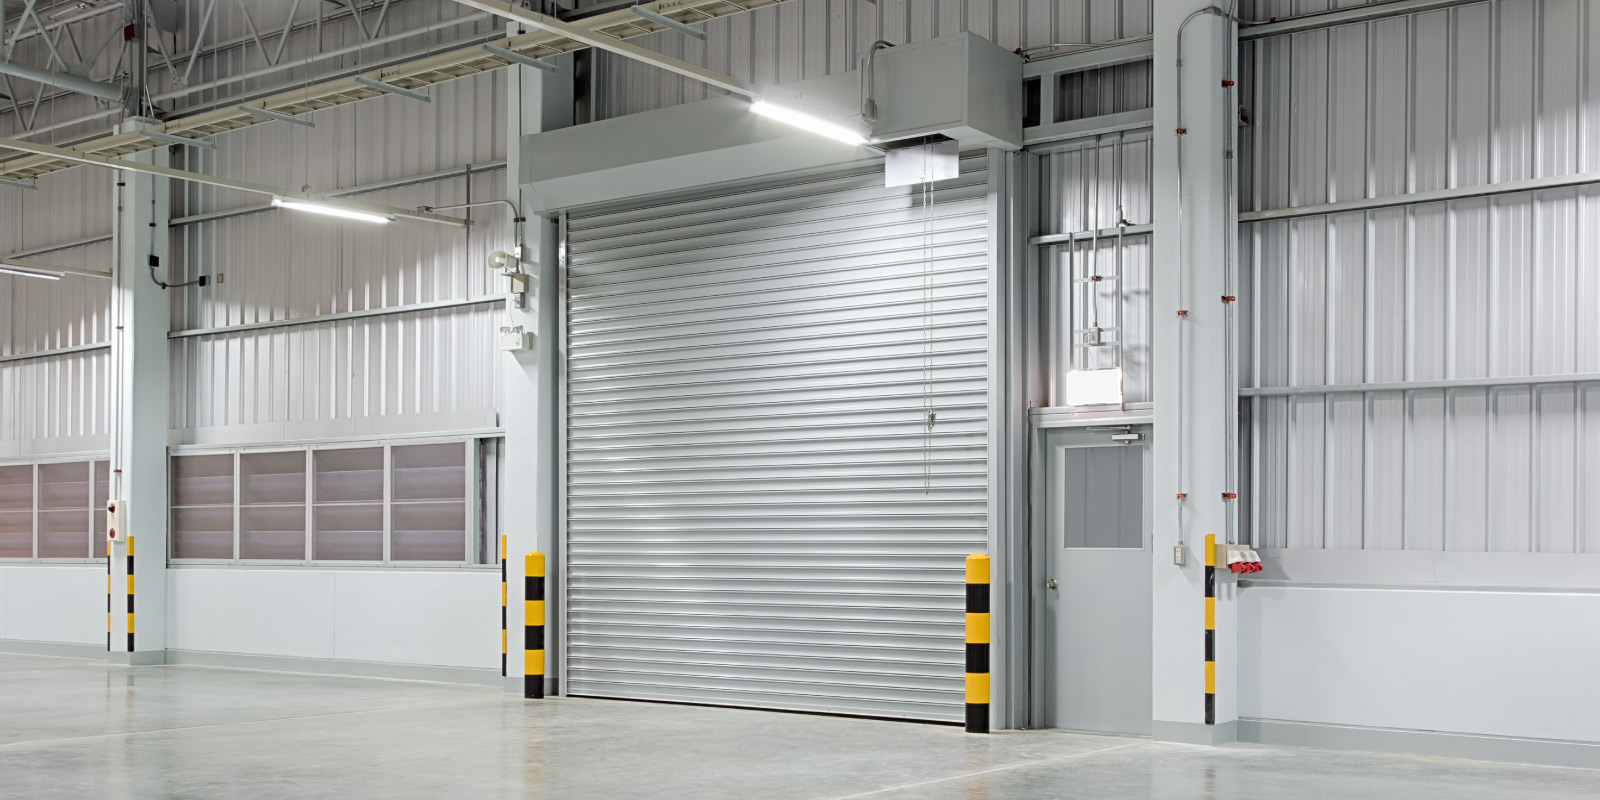 There are so many types of doors that you can use for the industrial environment. Talking of which roller shutter door is one such popular choice that is used for many reasons